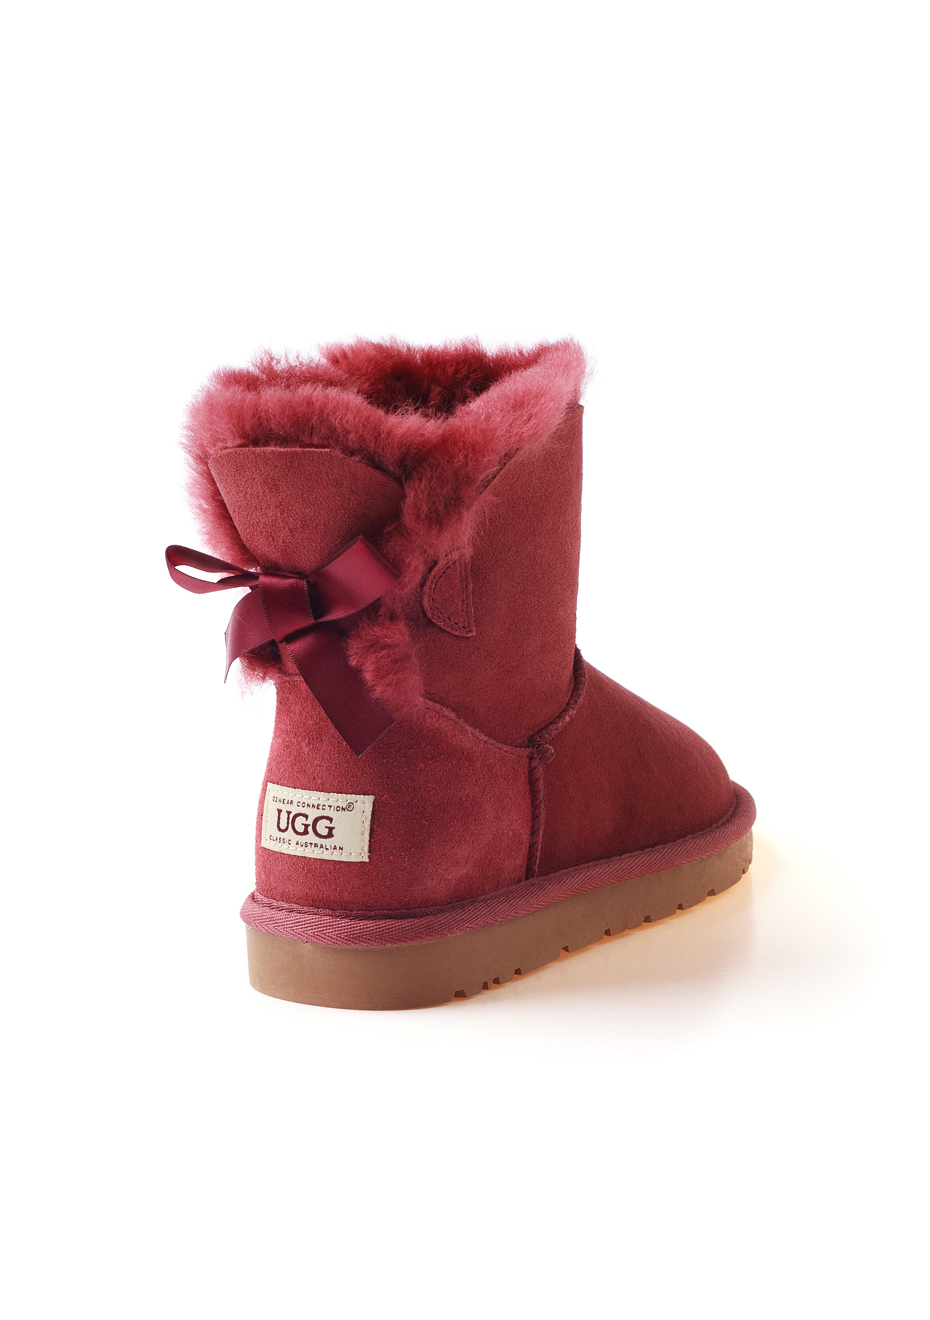 Ozwear - Ugg Classic 1 Ribbon Boots (Water Resistant) - Red Plum - Ozwear Uggs up to 58% - Onceit